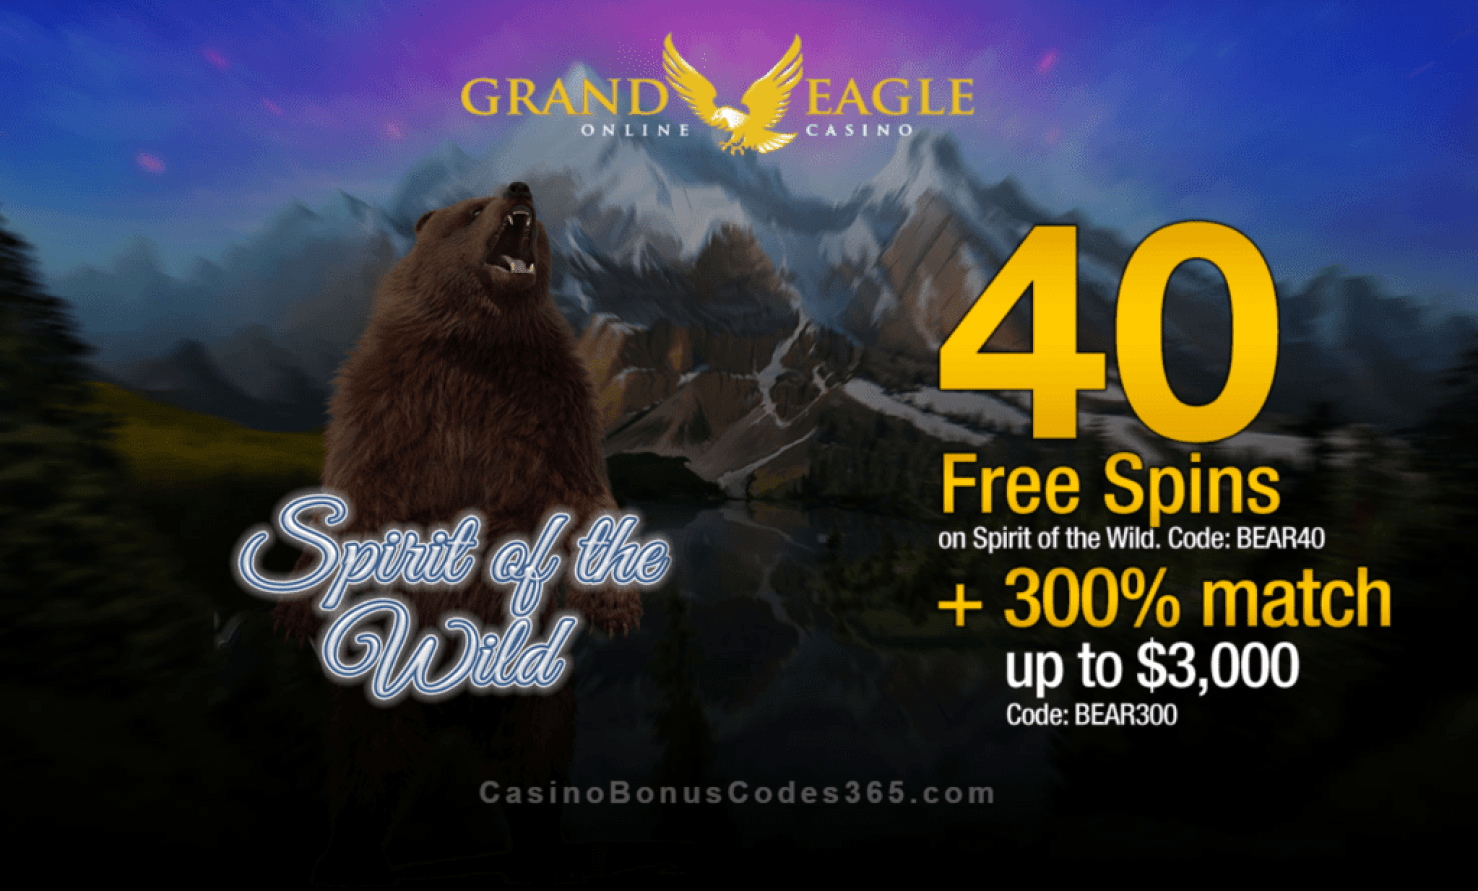 Grand Eagle Casino 40 FREE Saucify Spirit of the Wild Spins plus 300% Match Bonus New Game Special Offer